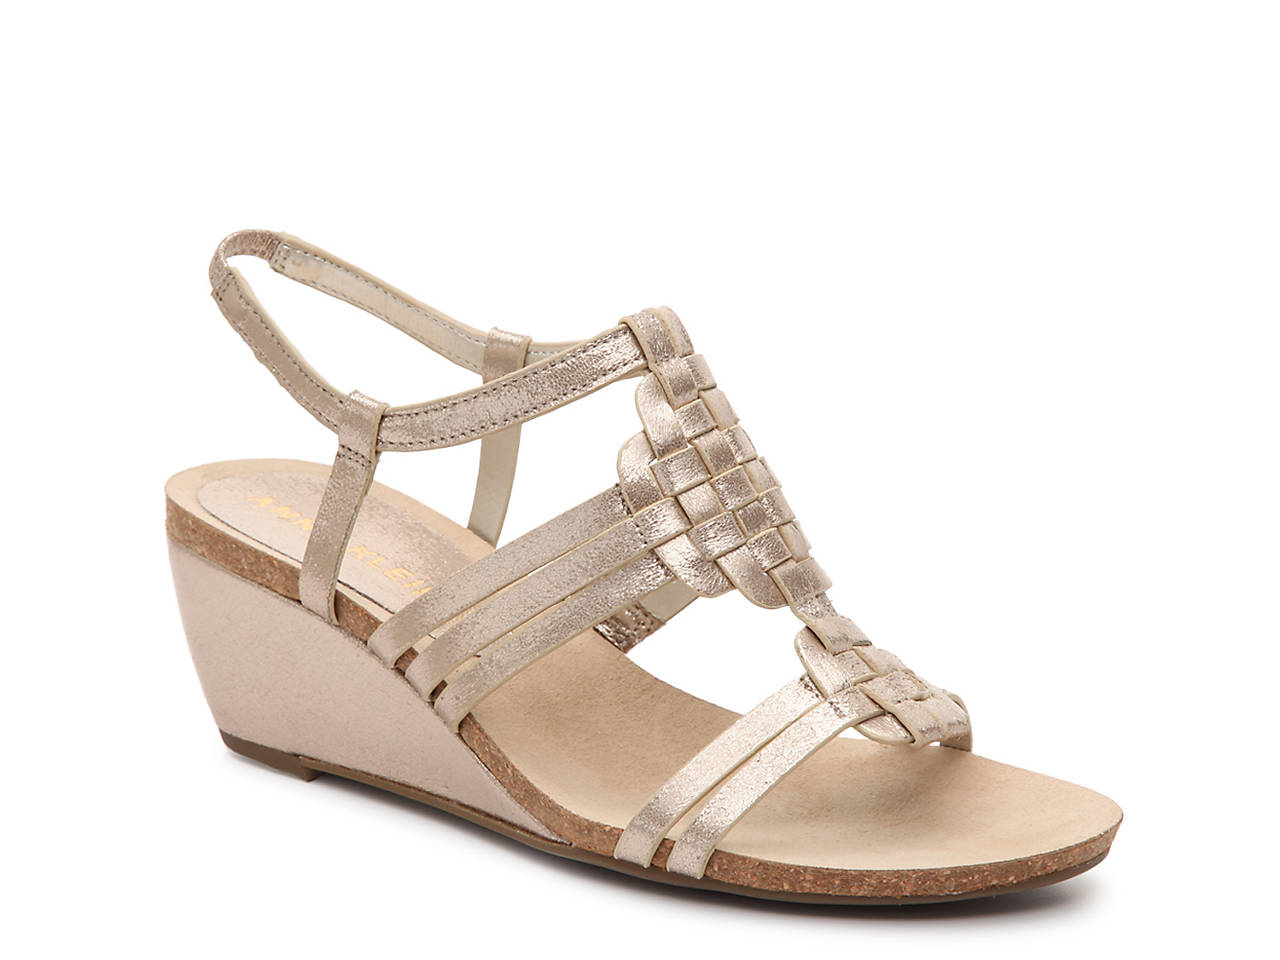 638845ef431a Anne Klein Tilly Wedge Sandal Women s Shoes